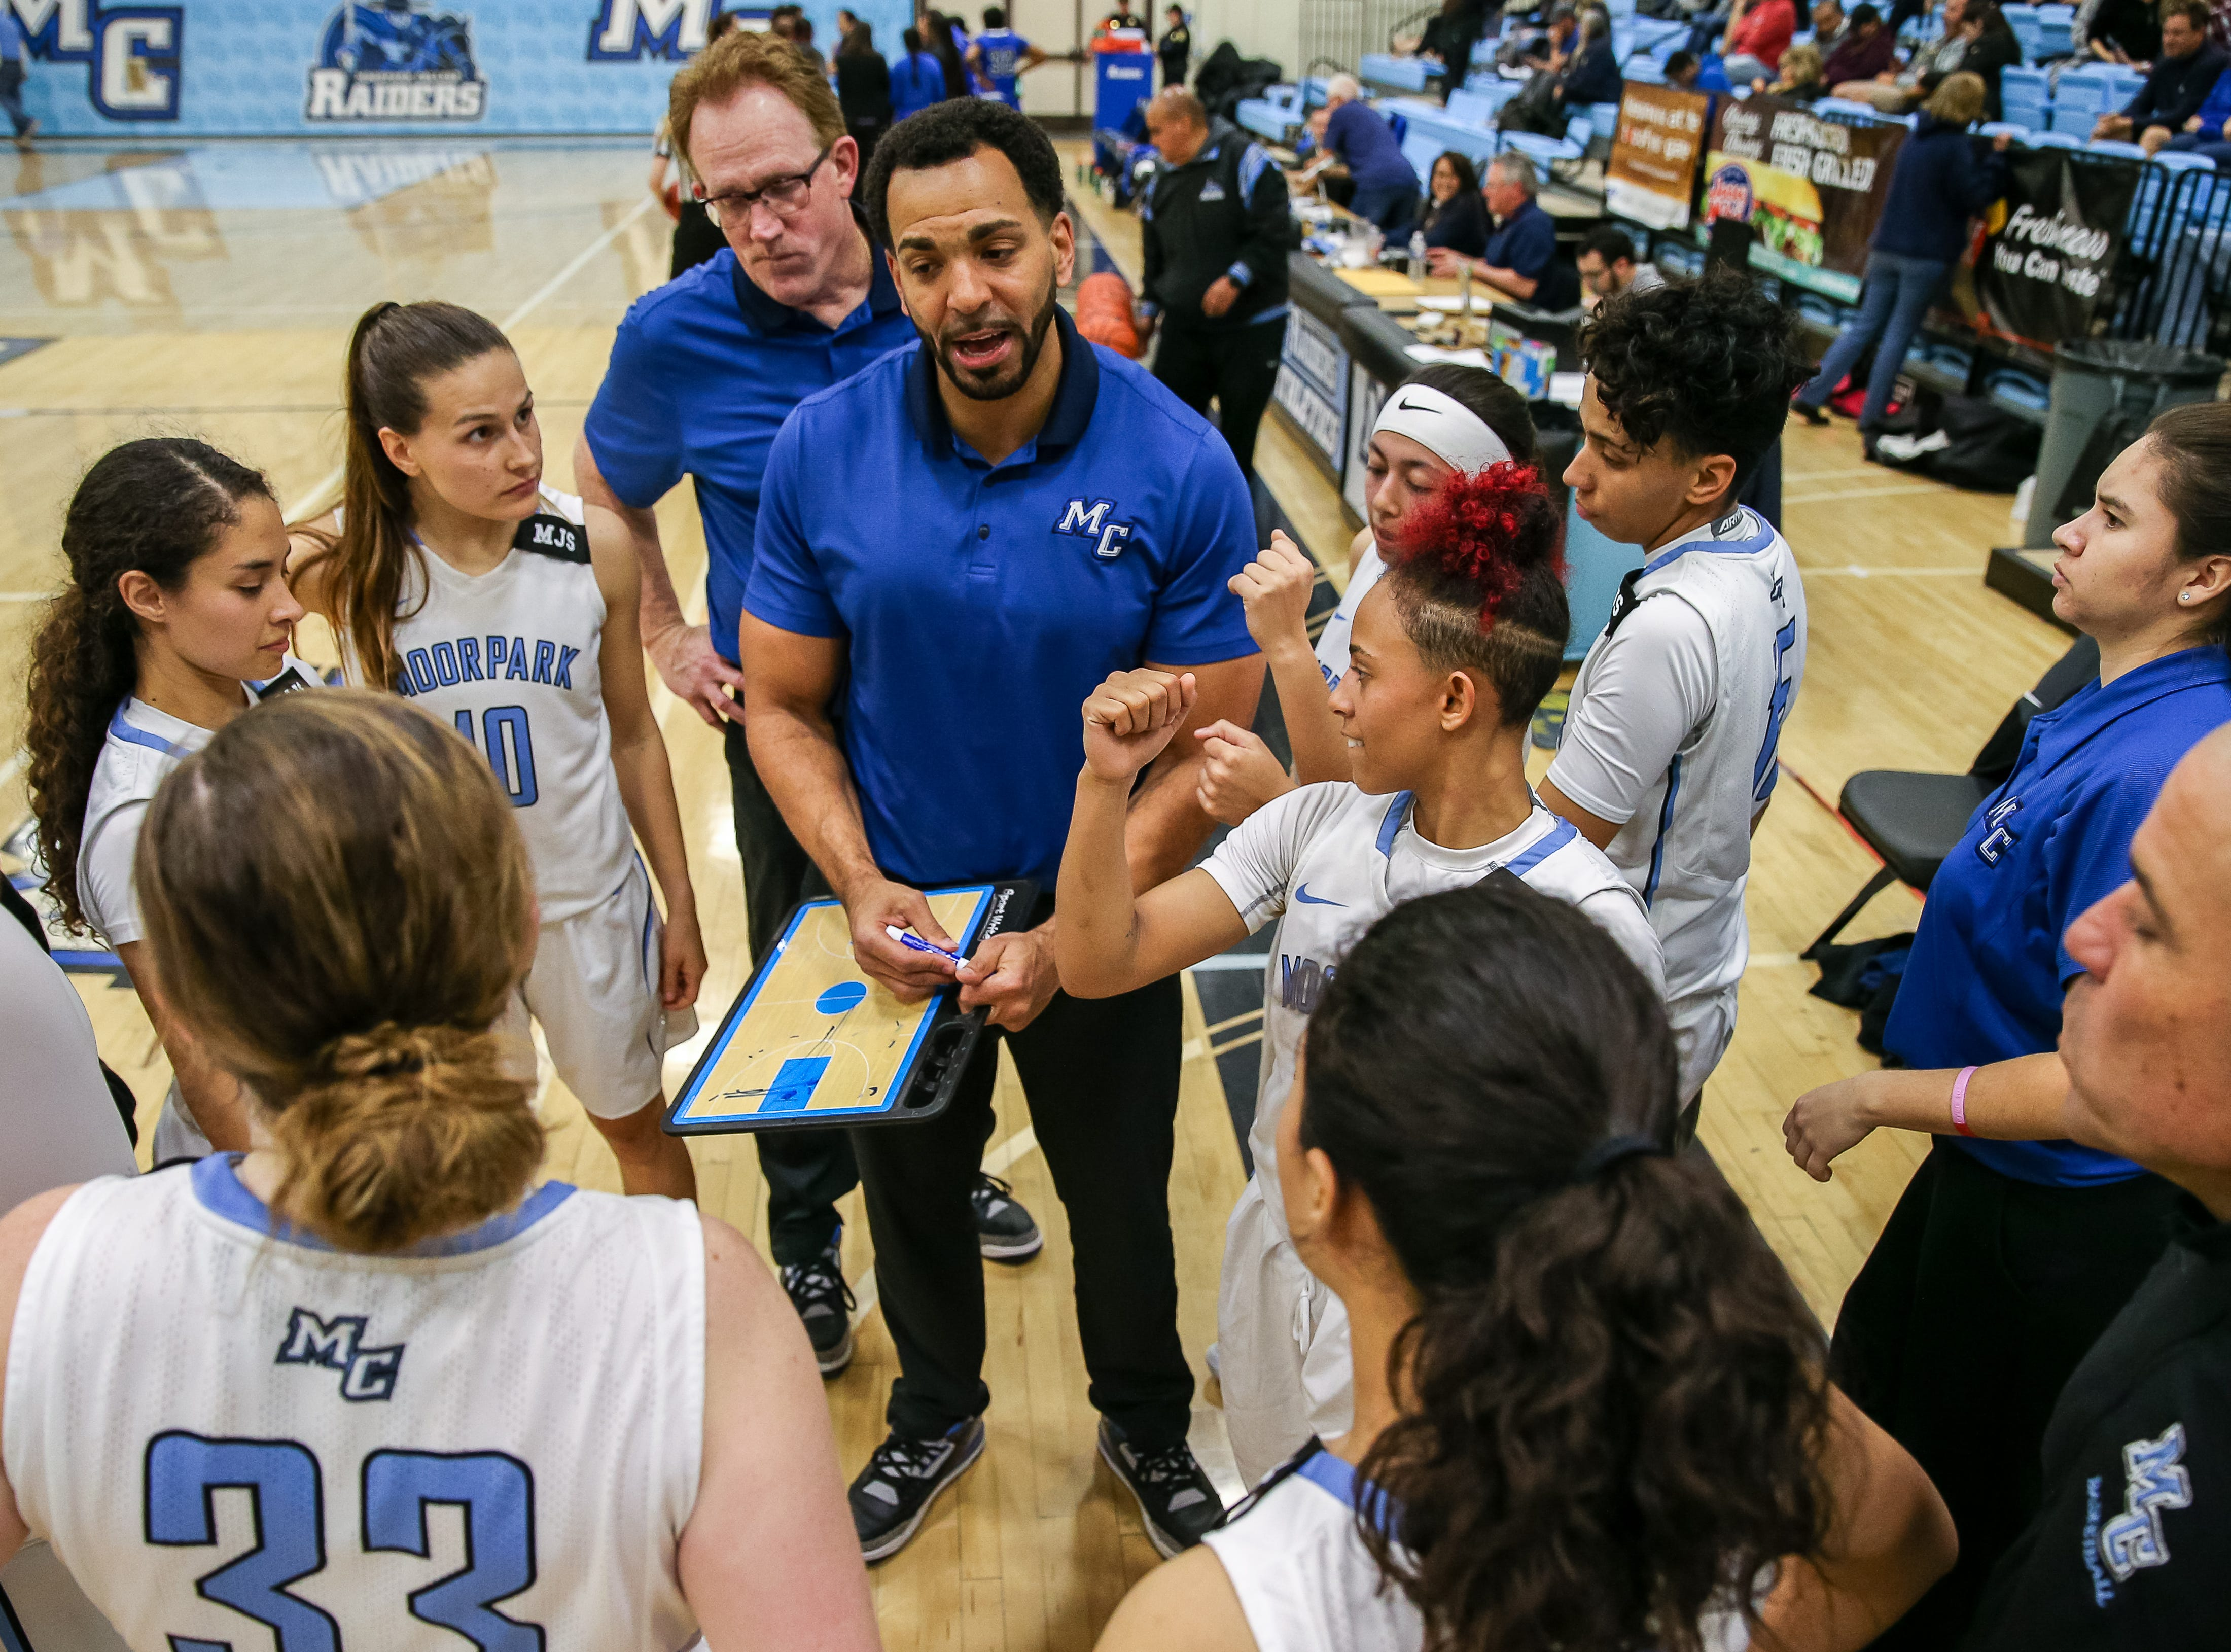 Moorpark College head coach Kenny Plummer gathers his players for some game planning during the Raiders' 86-56 win over Cerritos in a Southern California regional semifinal game Saturday night at Moorpark College.